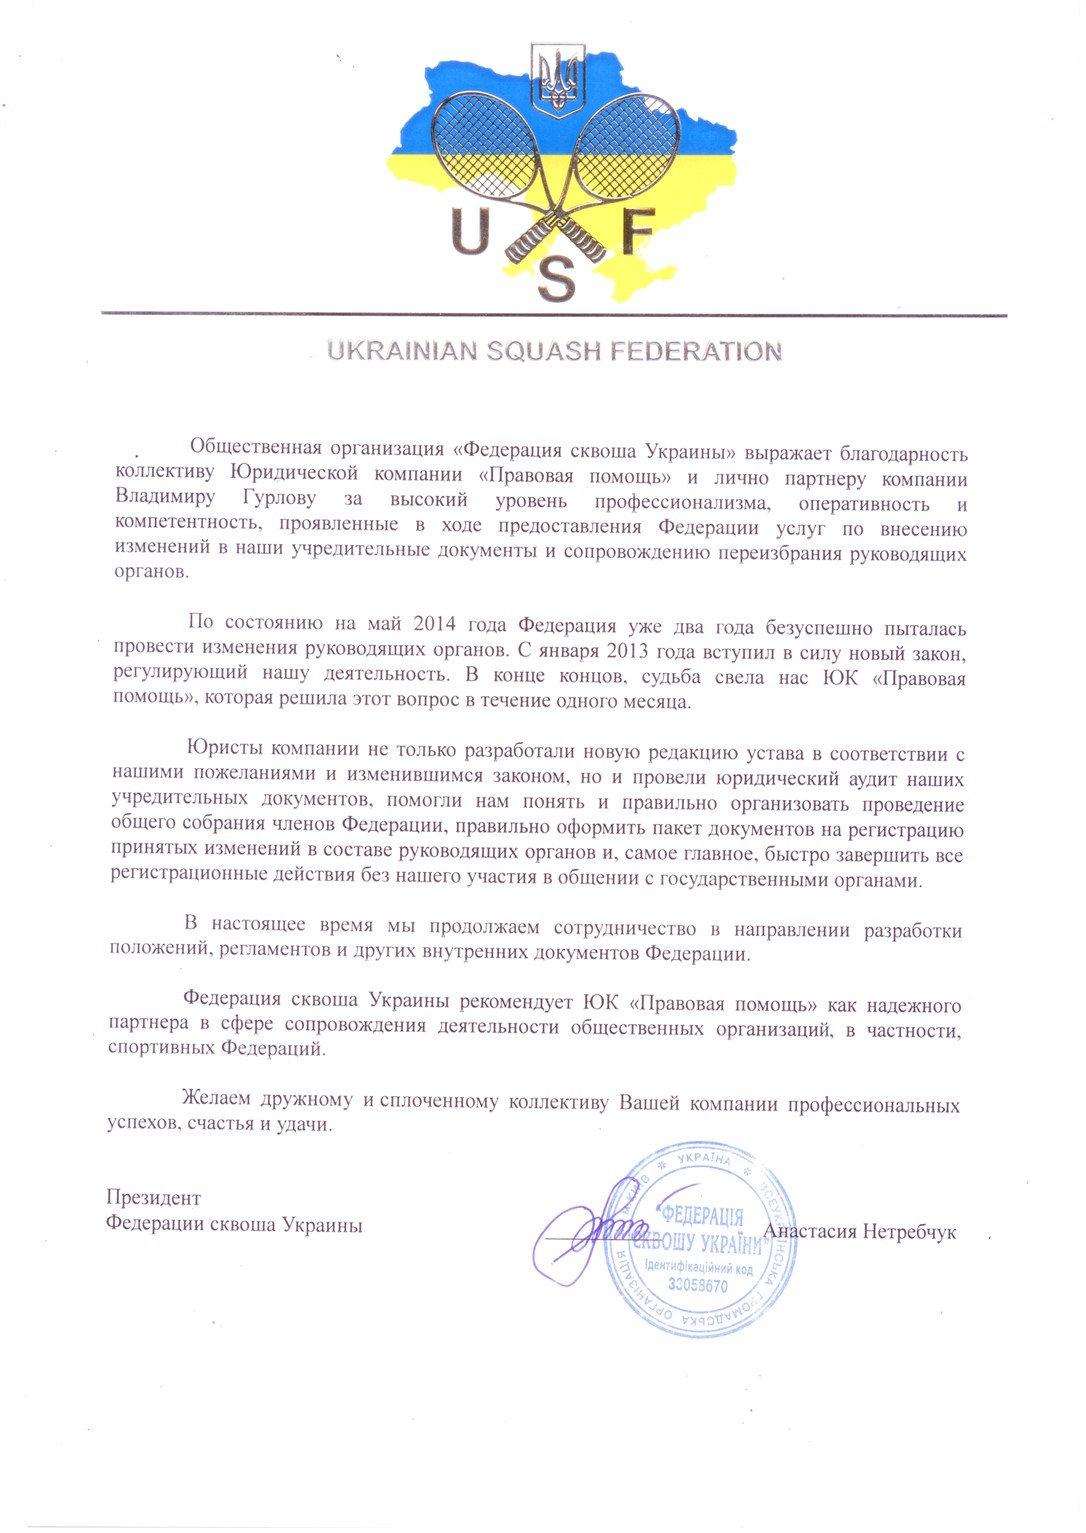 Receiving of official invitation letter for obtainment of president a netrebchuk ukrainian squash federation stopboris